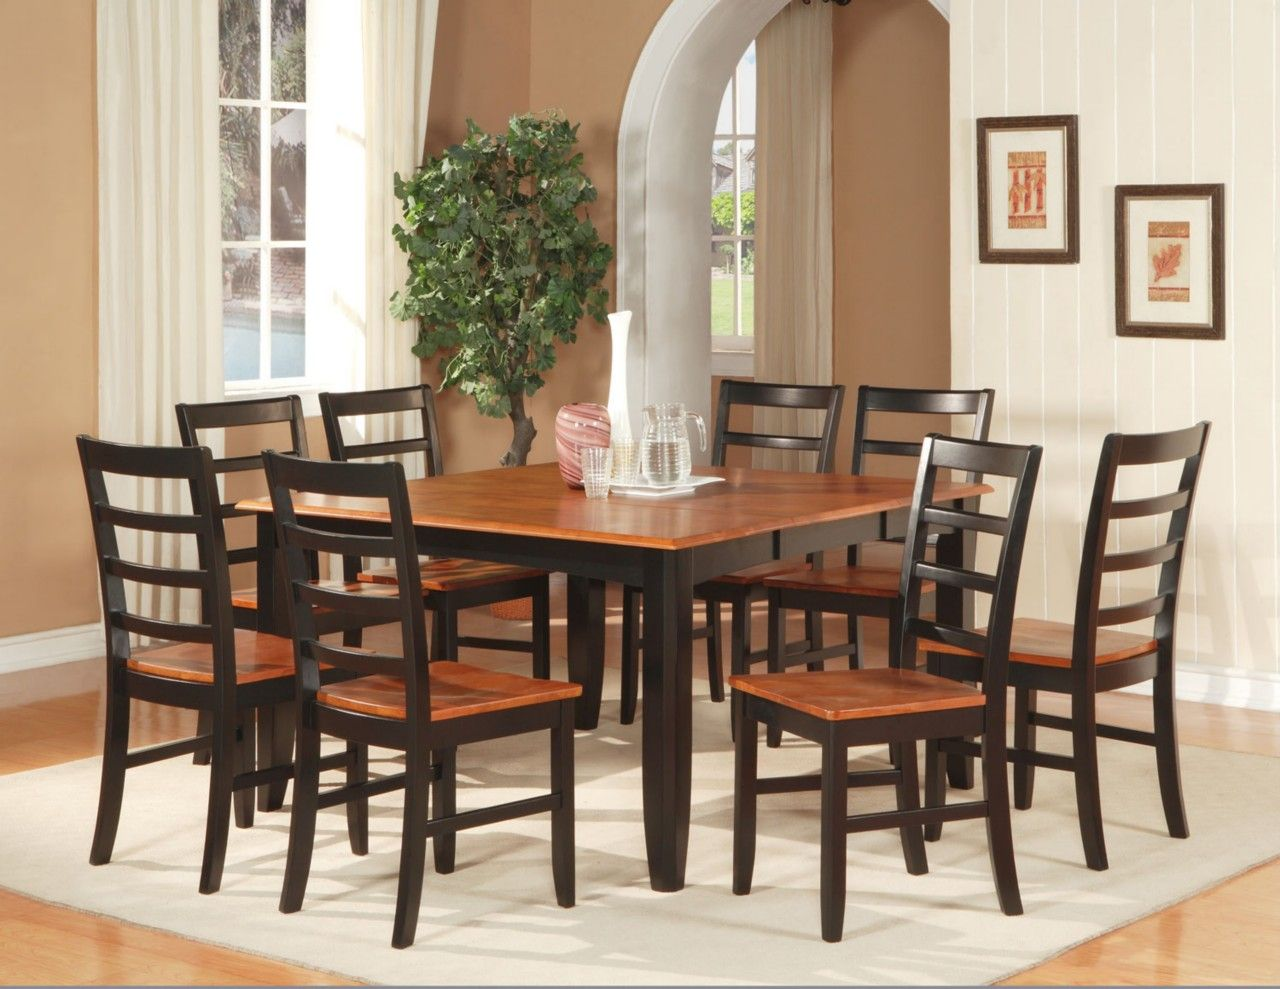 Dining Room Table Set Best Dining Room Tables  Valuable Information To Get To Know More Design Inspiration